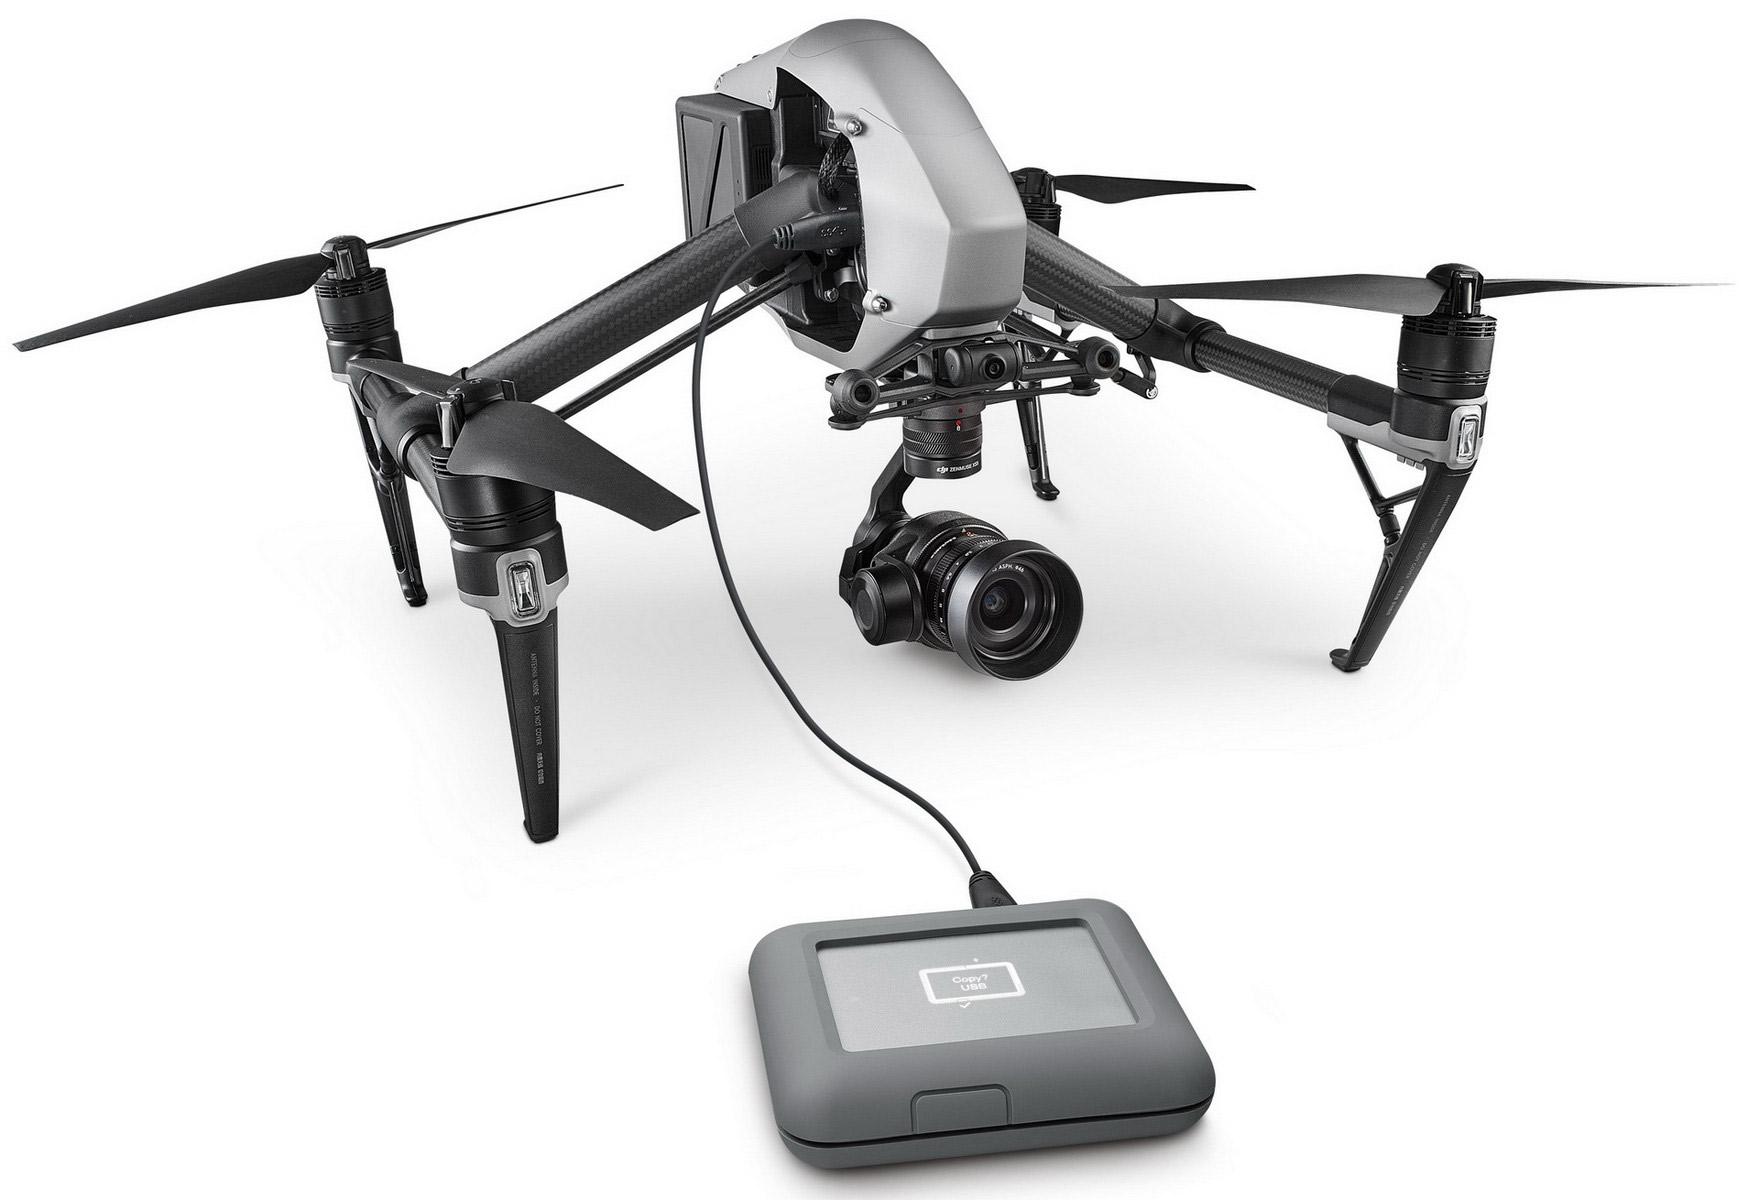 New mobile storage from Seagate: LaCie DJI Copilot, Fast SSD and LaCie Rugged Secure